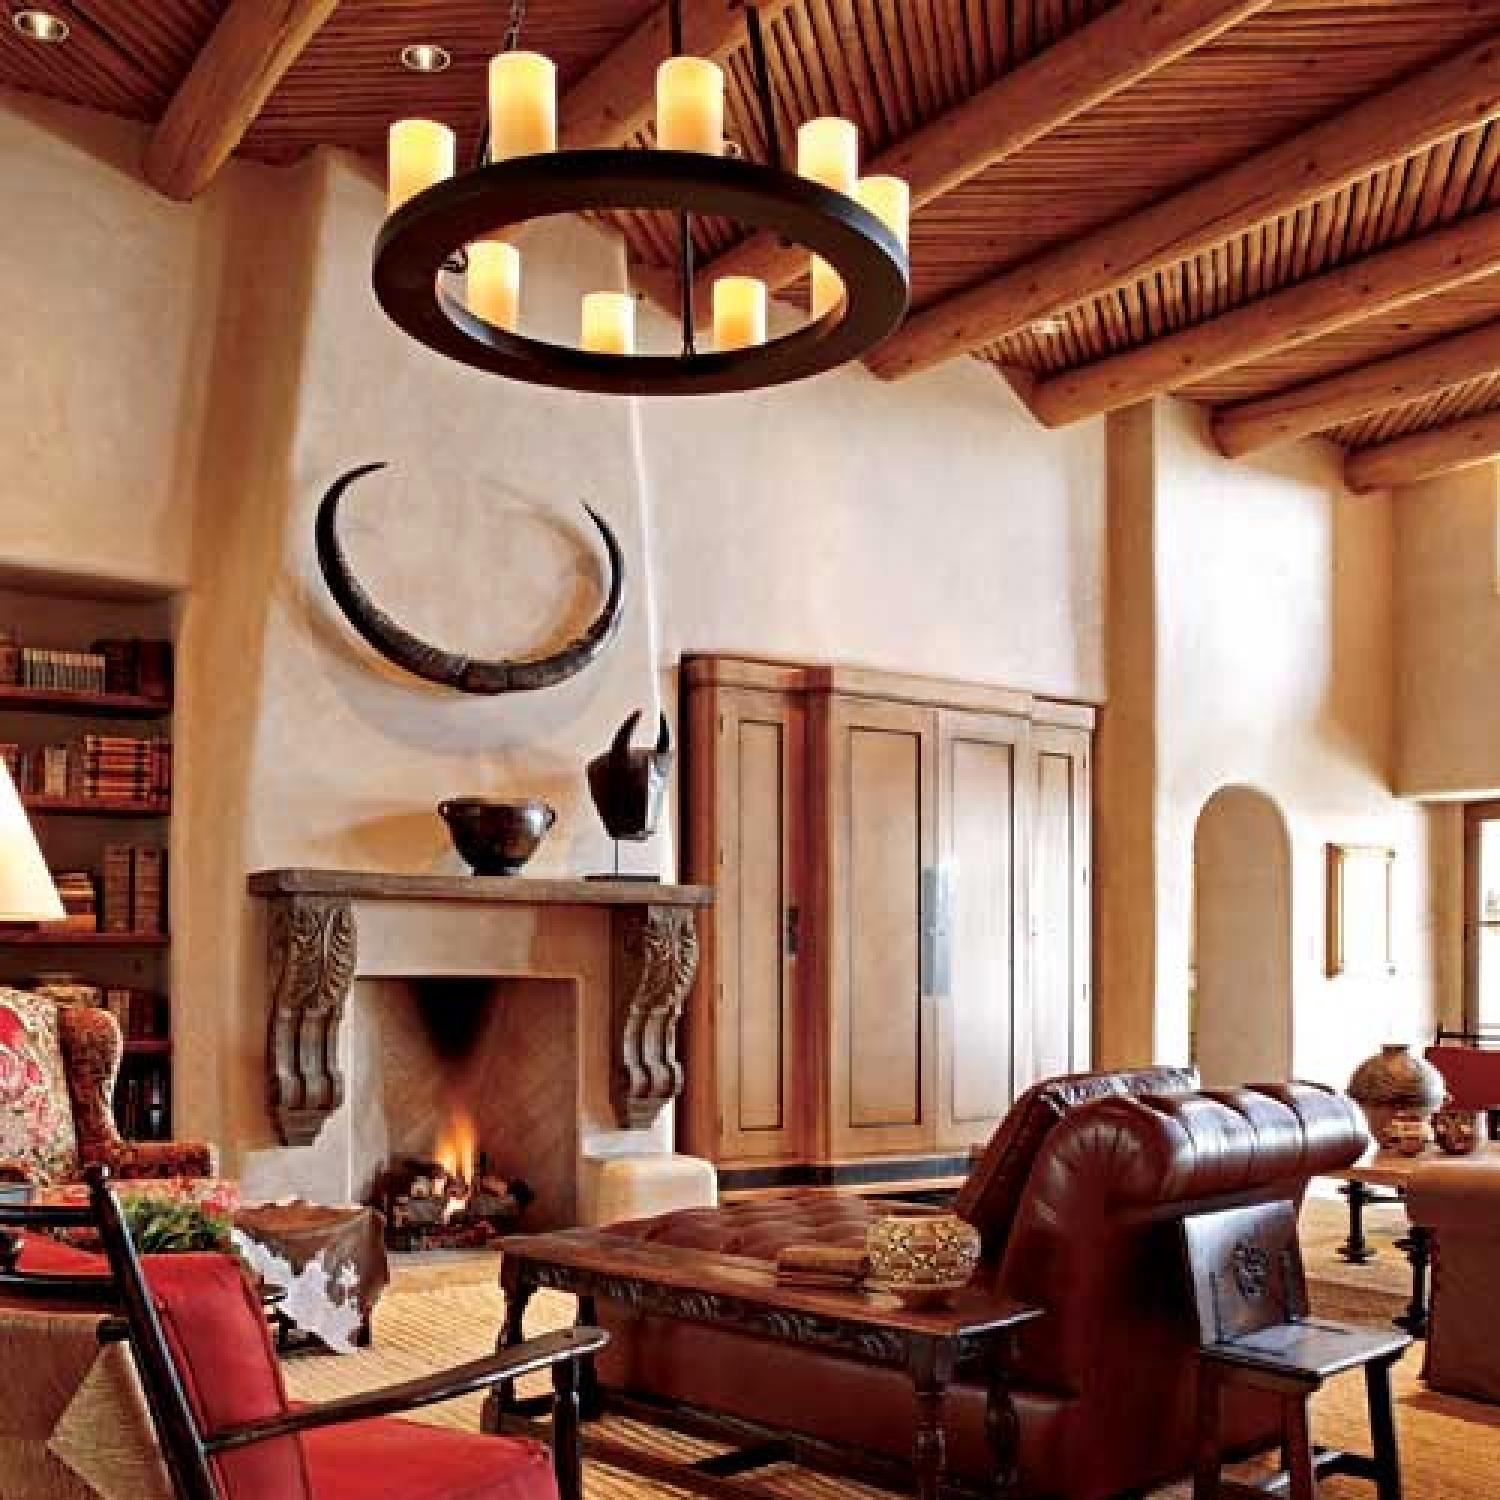 Pueblo Style Home with Traditional Southwestern Design   Traditional     Pueblo Style Home with Traditional Southwestern Design   Traditional Home